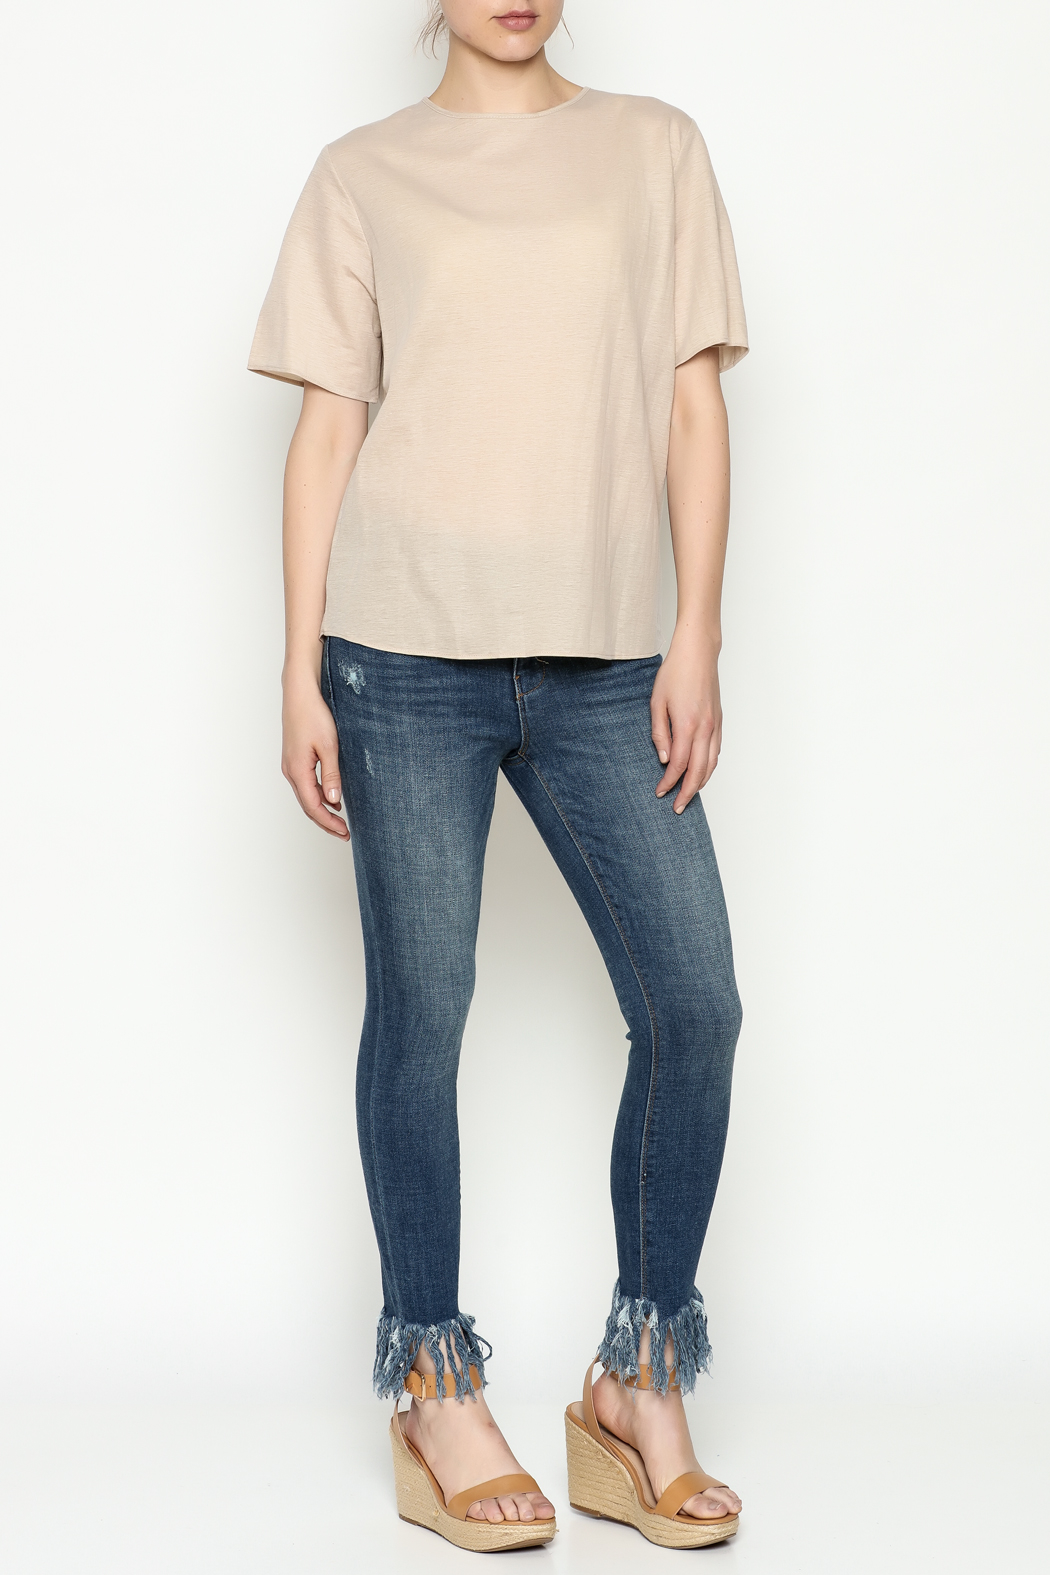 THINK CLOSET Simple Tie Tee - Side Cropped Image